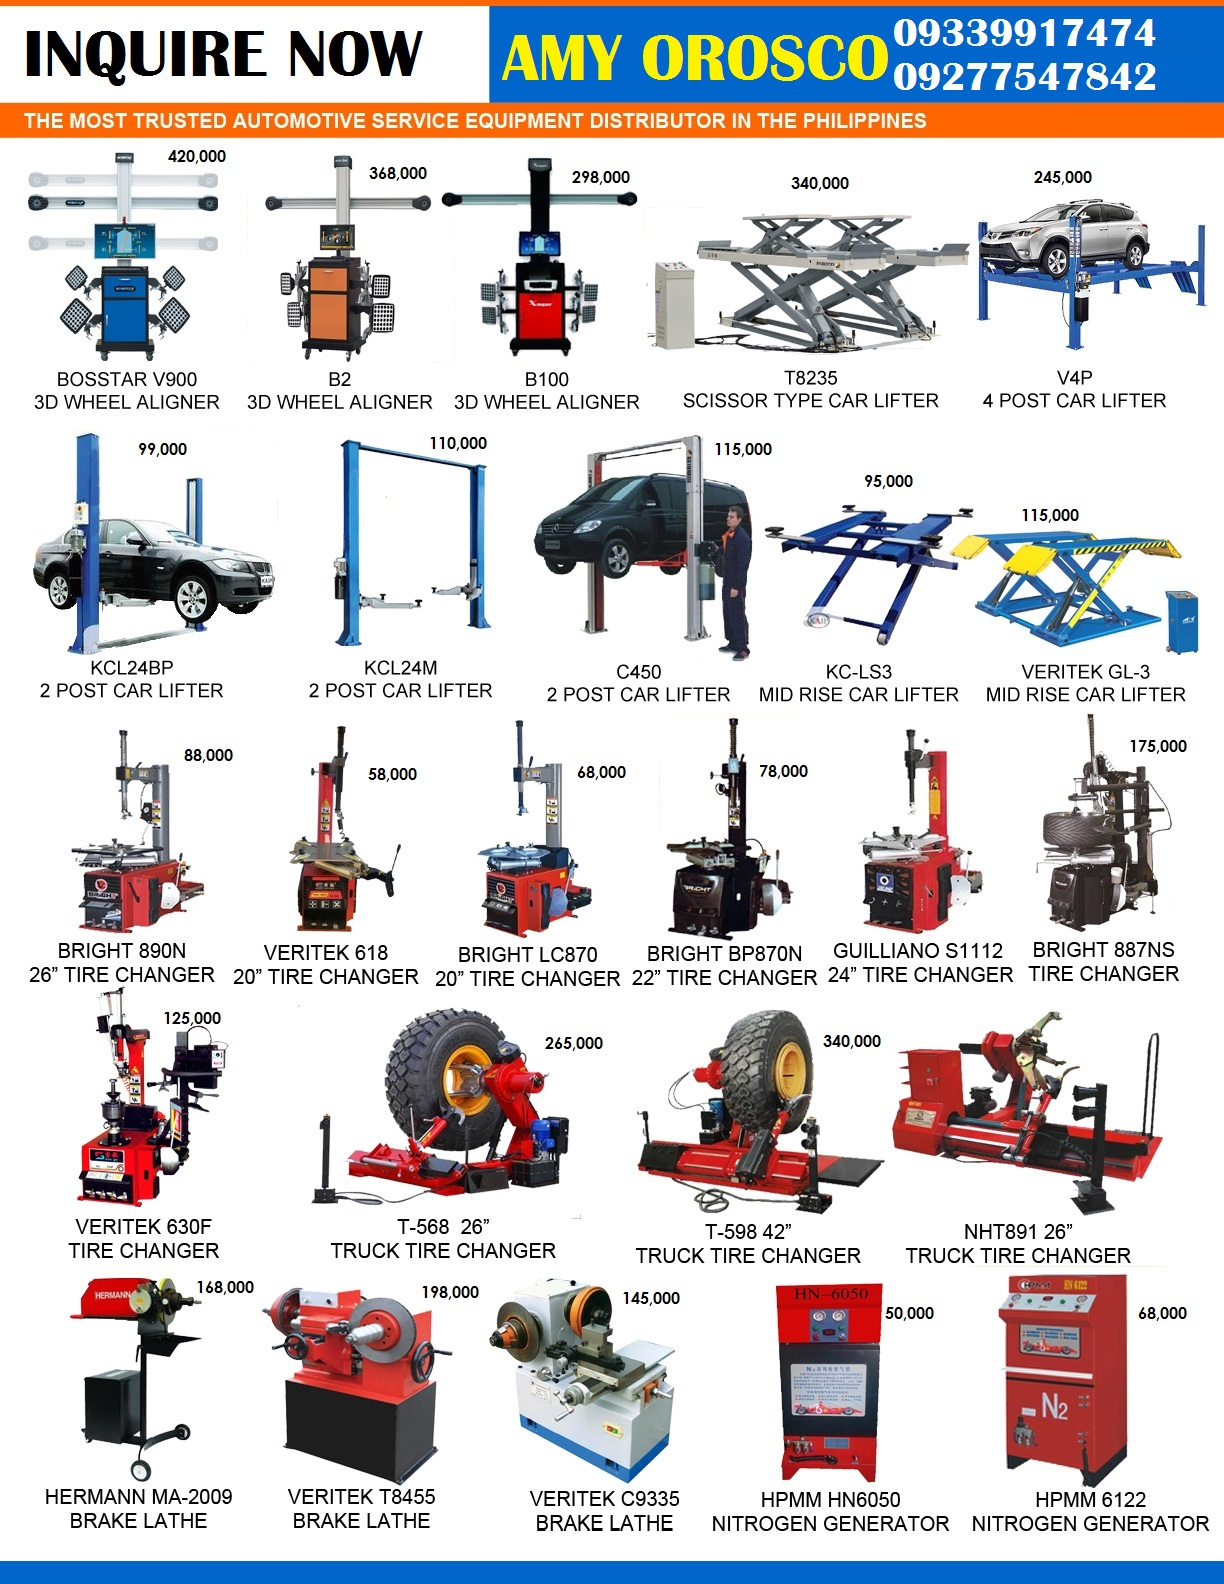 All in One Automotive Shop Service Equipment